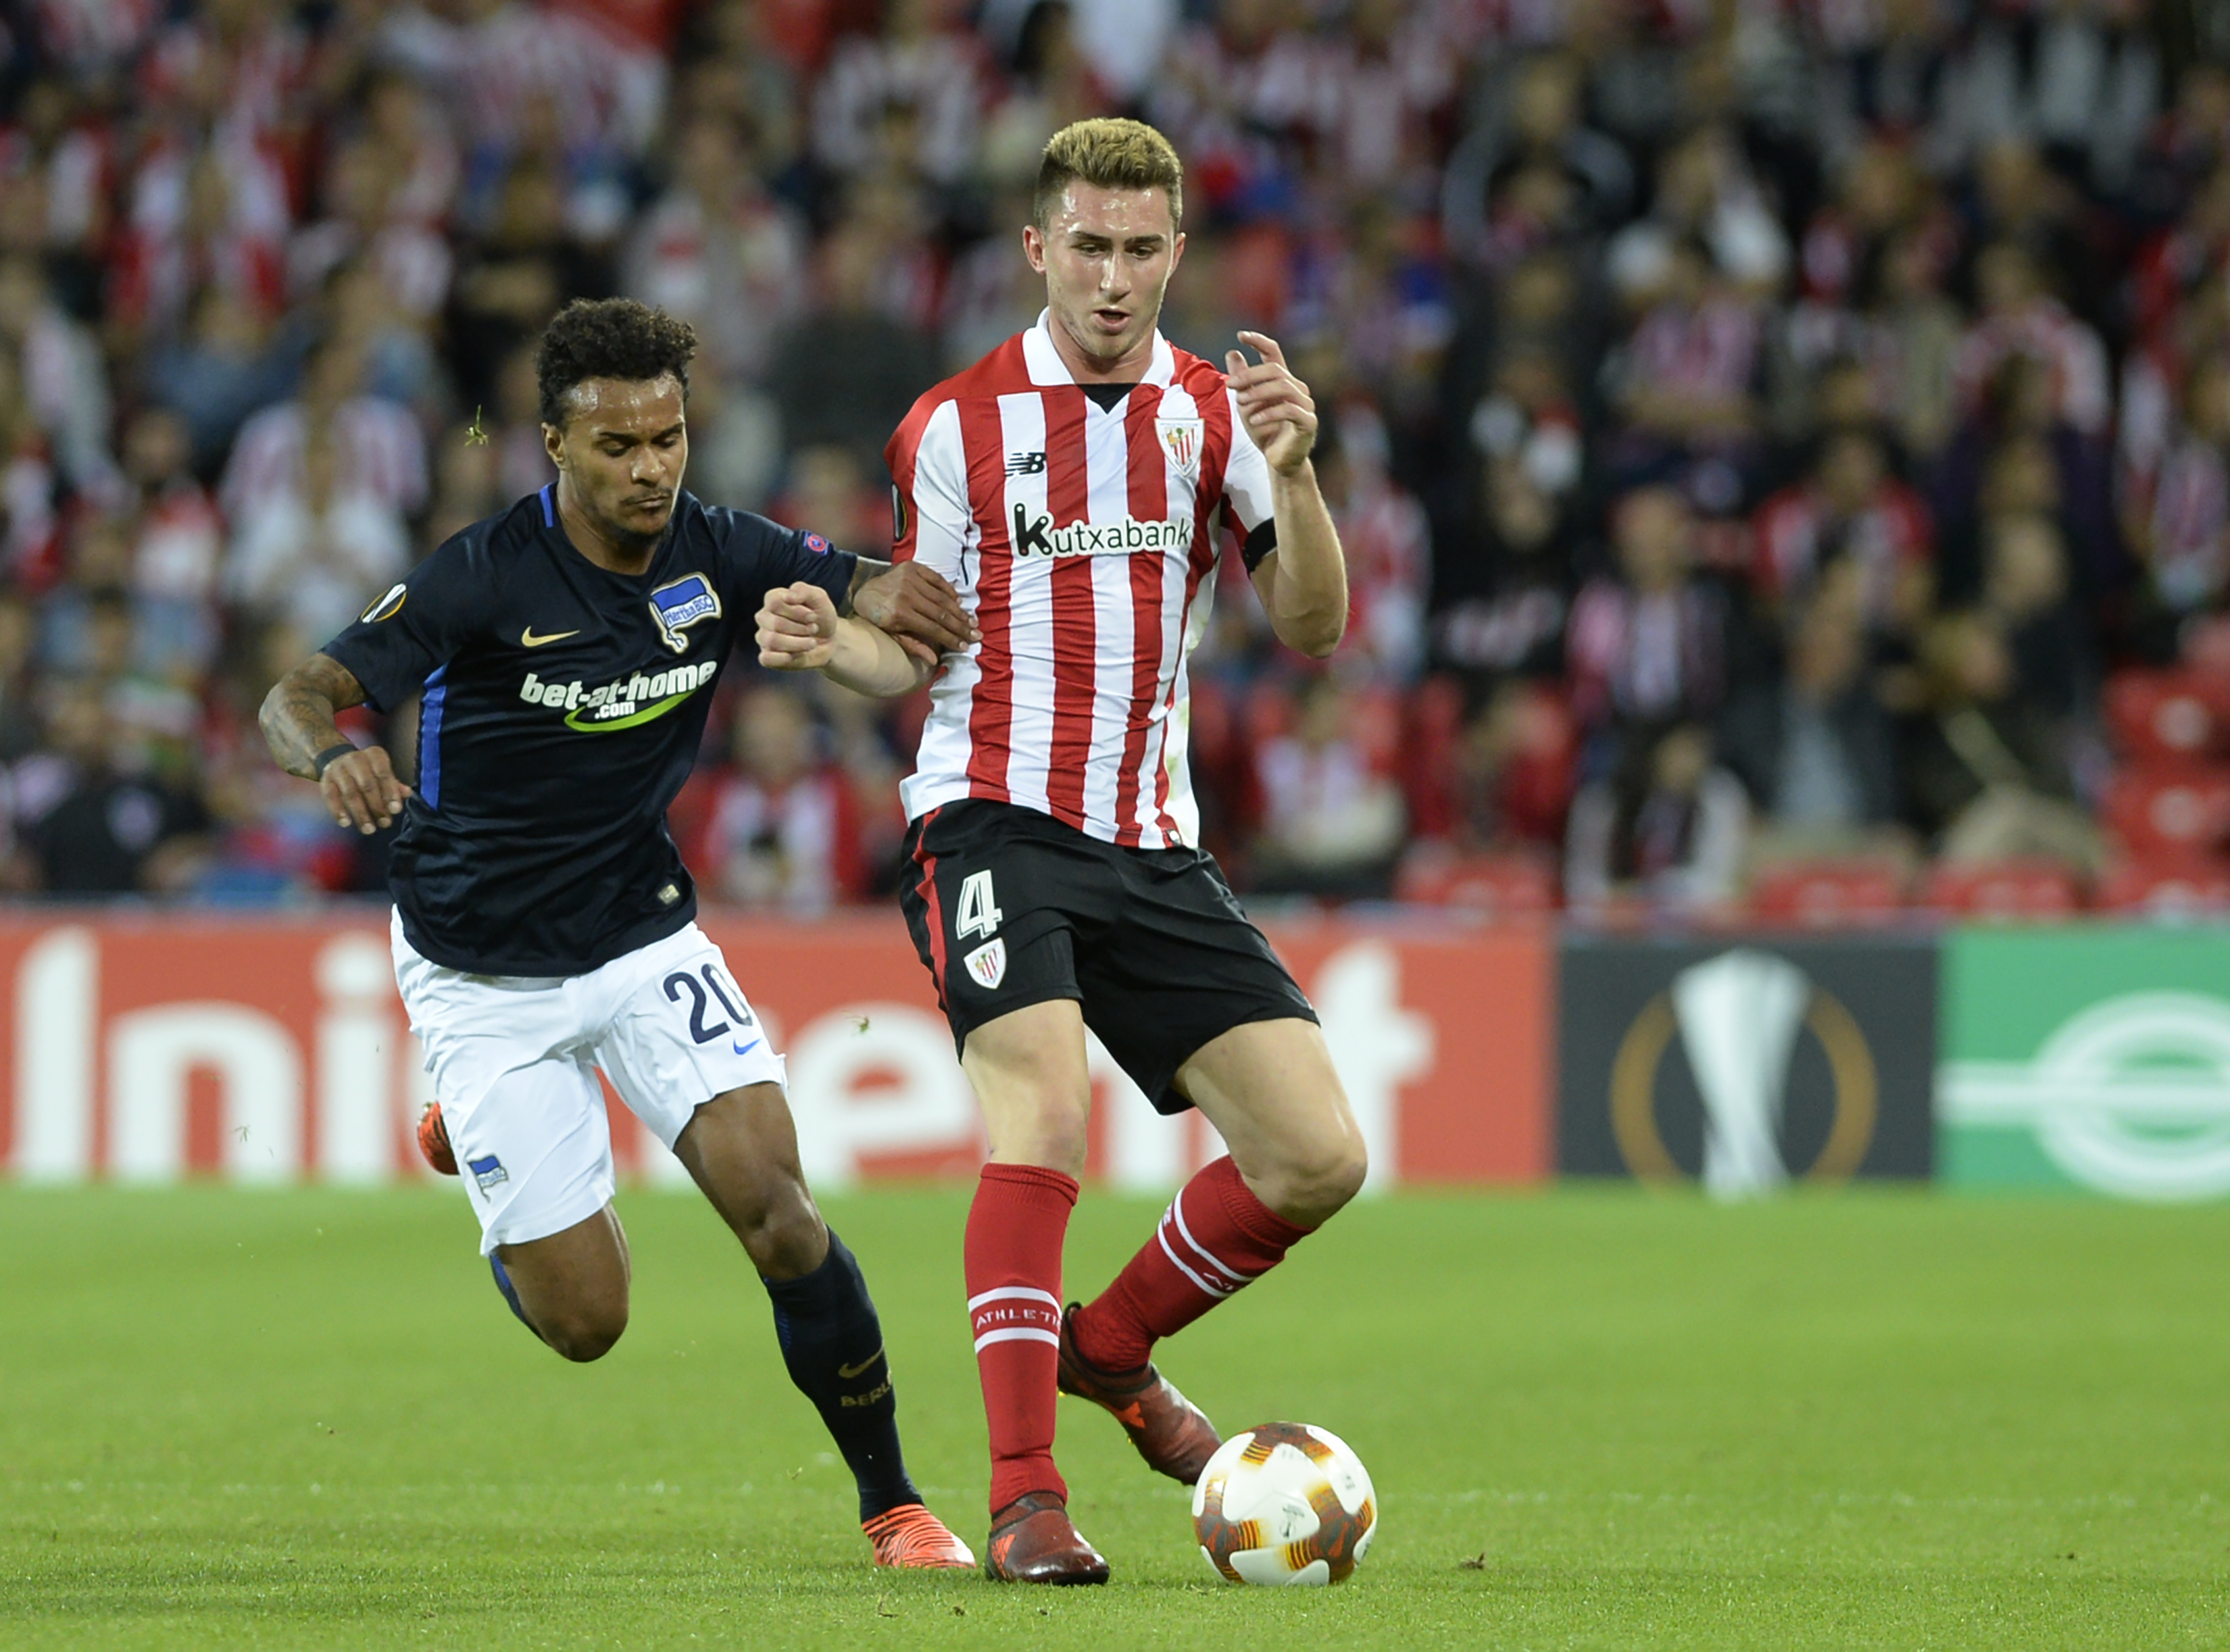 Aymeric Laporte (r) in action for Athletic Bilbao.